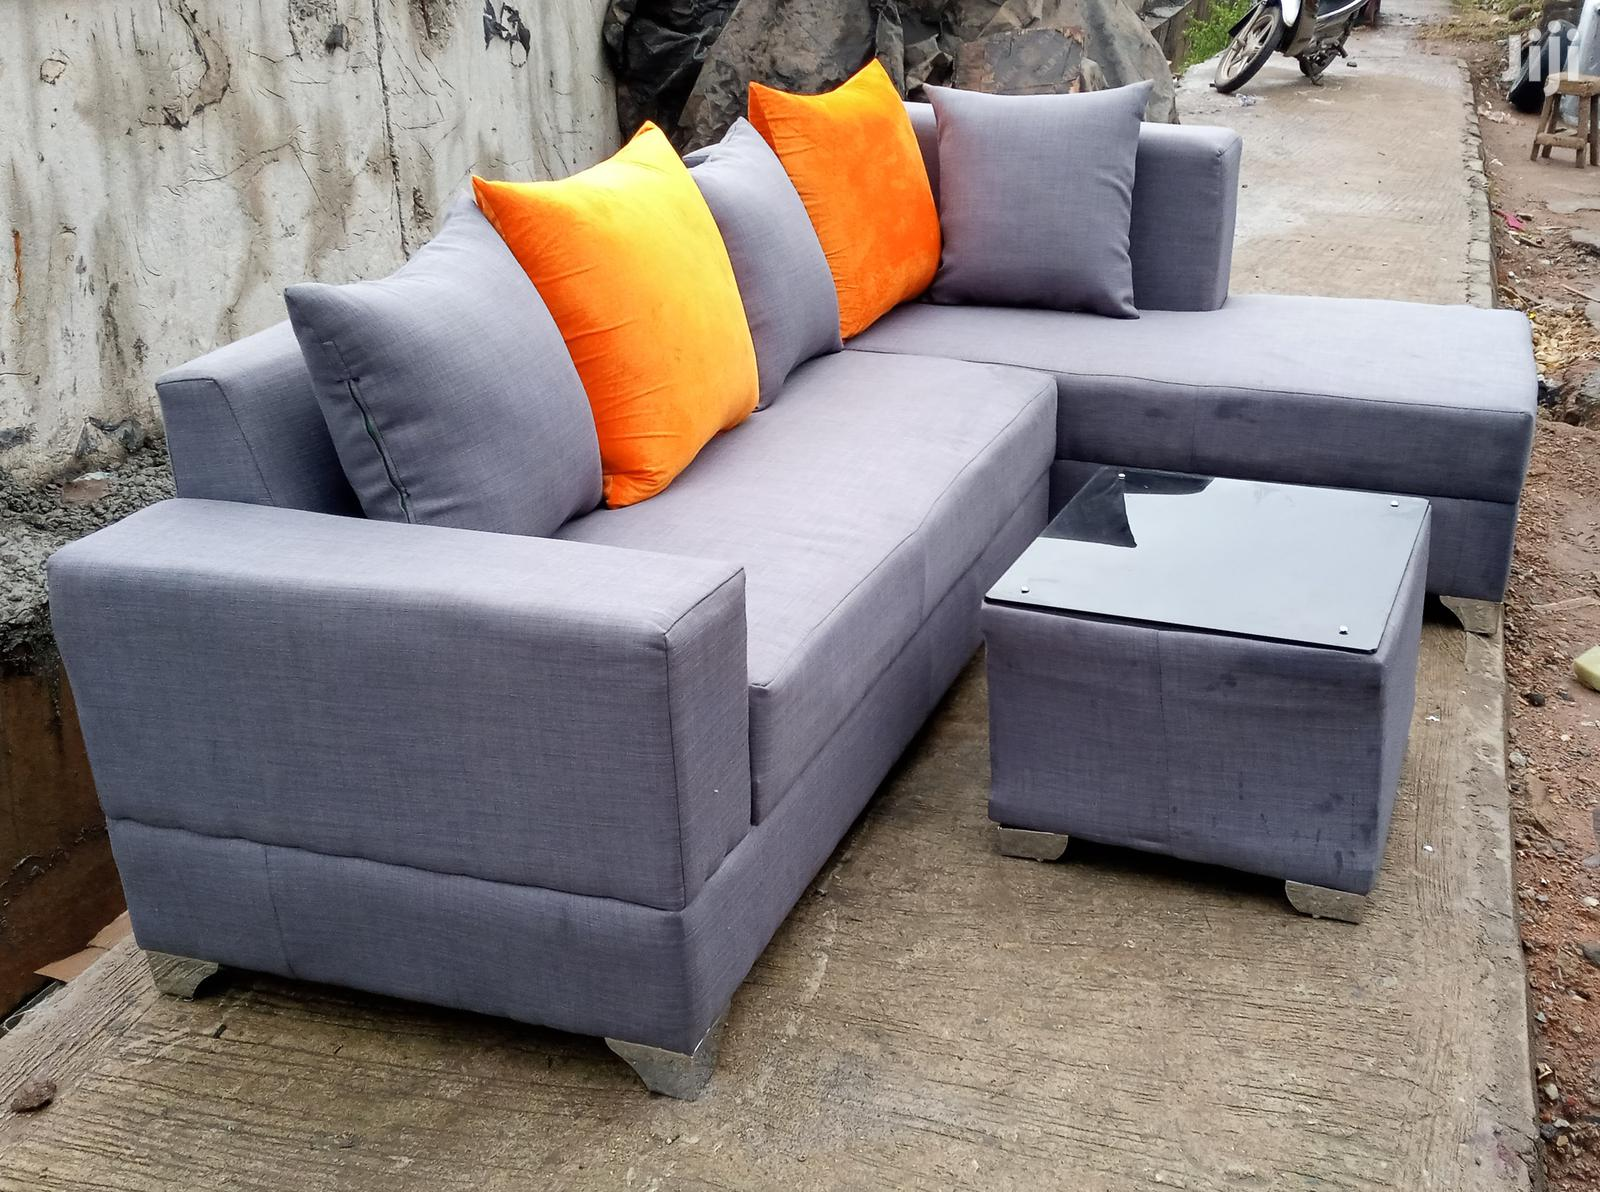 Archive L Shaped Sofa Chairs With Glass Centre Table Grey Fabric Couches In Lagos State Furniture Prefix E Jiji Ng For Sale In Lagos Prefix E On Jiji Ng